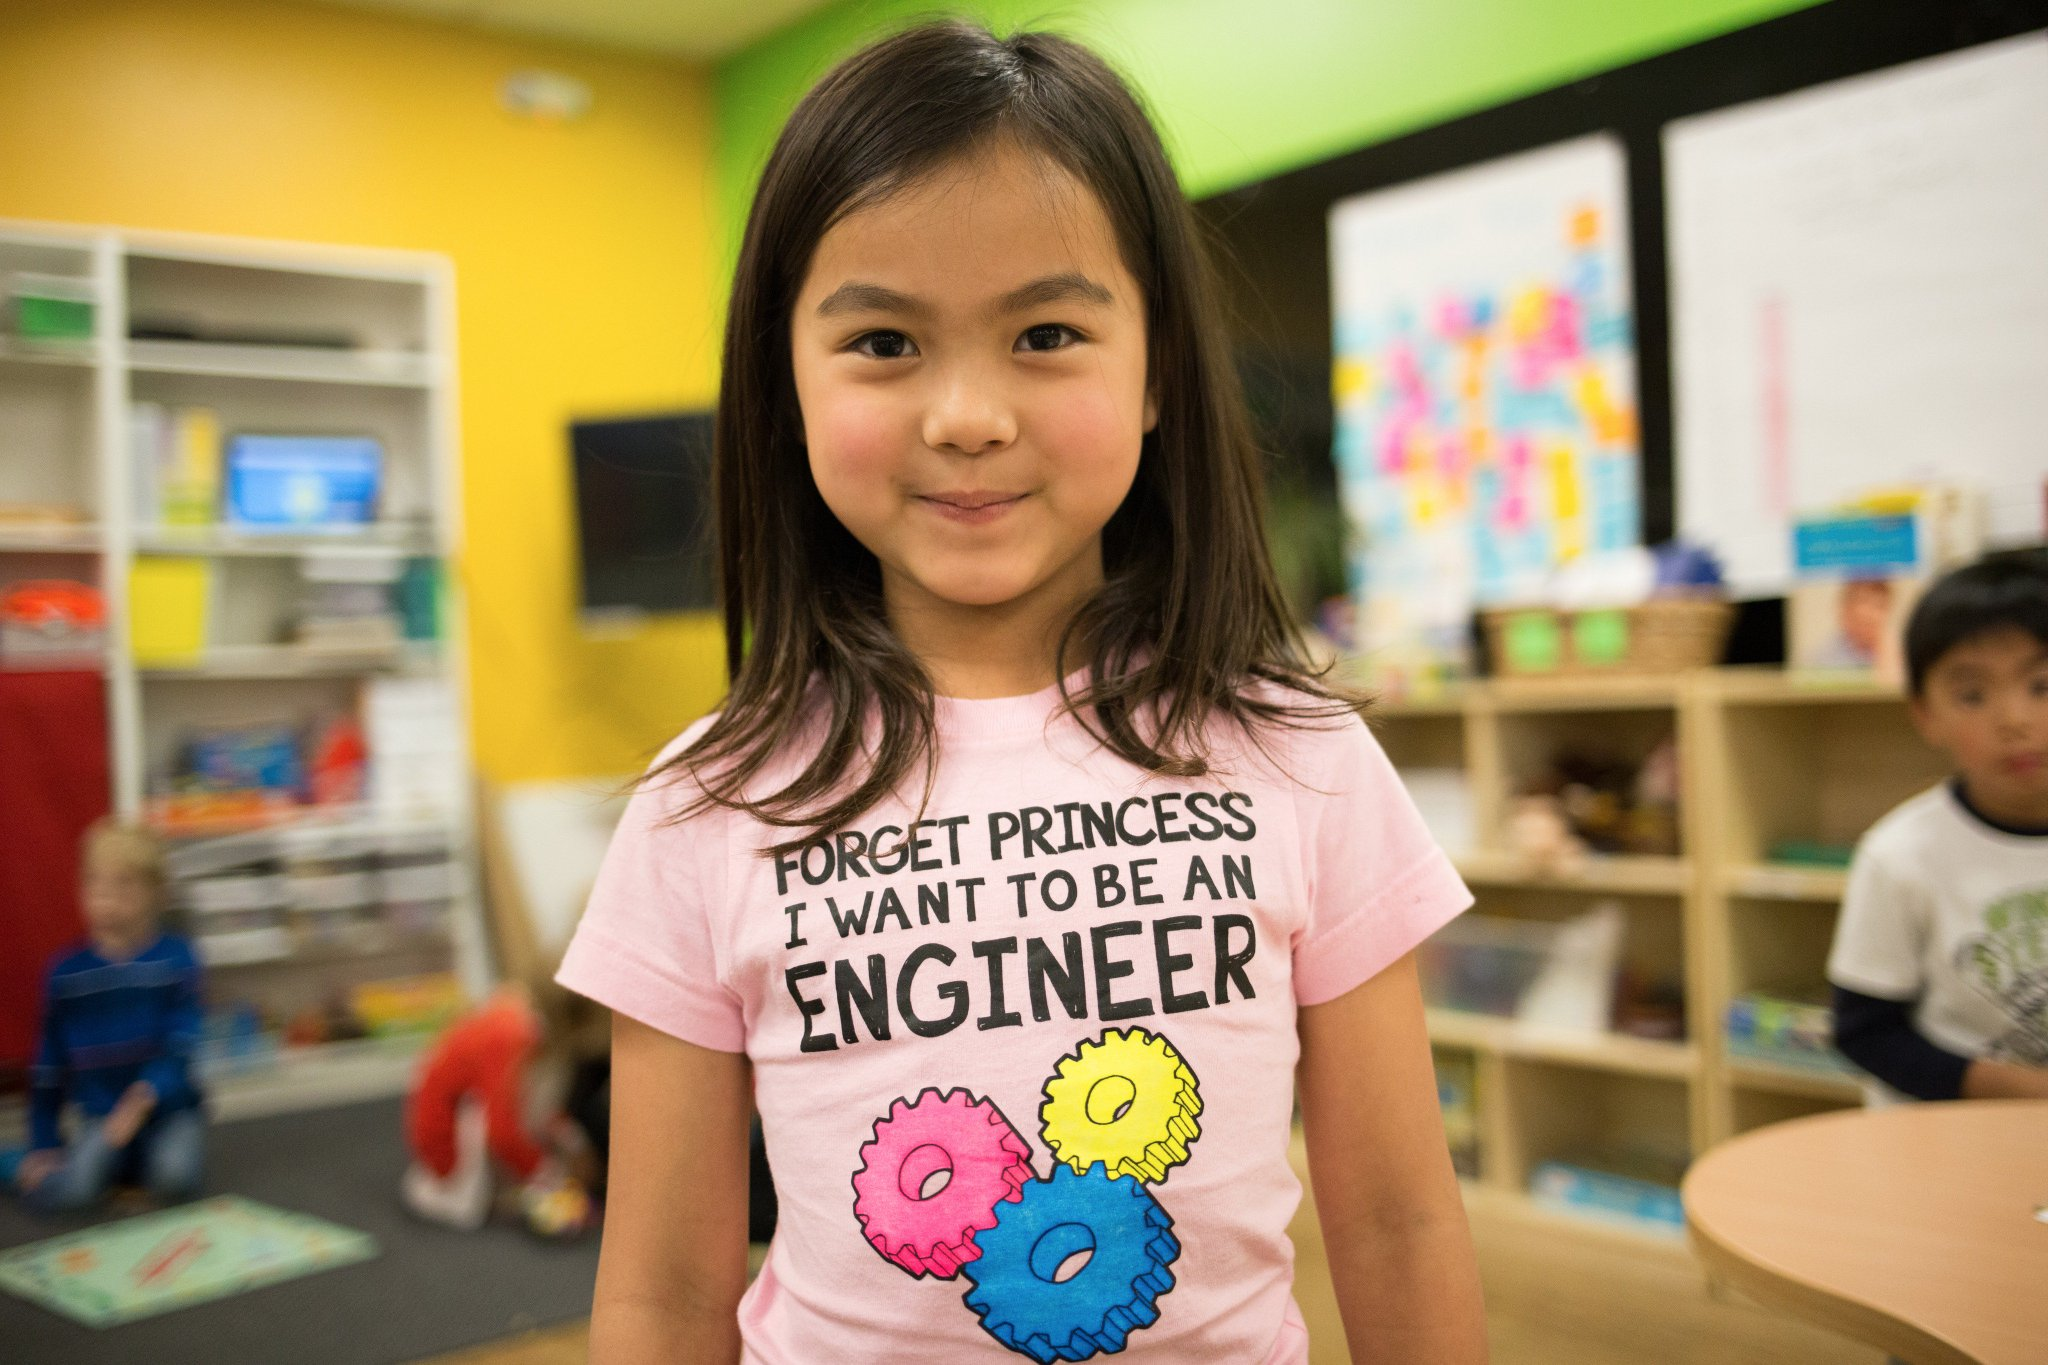 Khan lab school on twitter forget princess i want to for I need an engineer